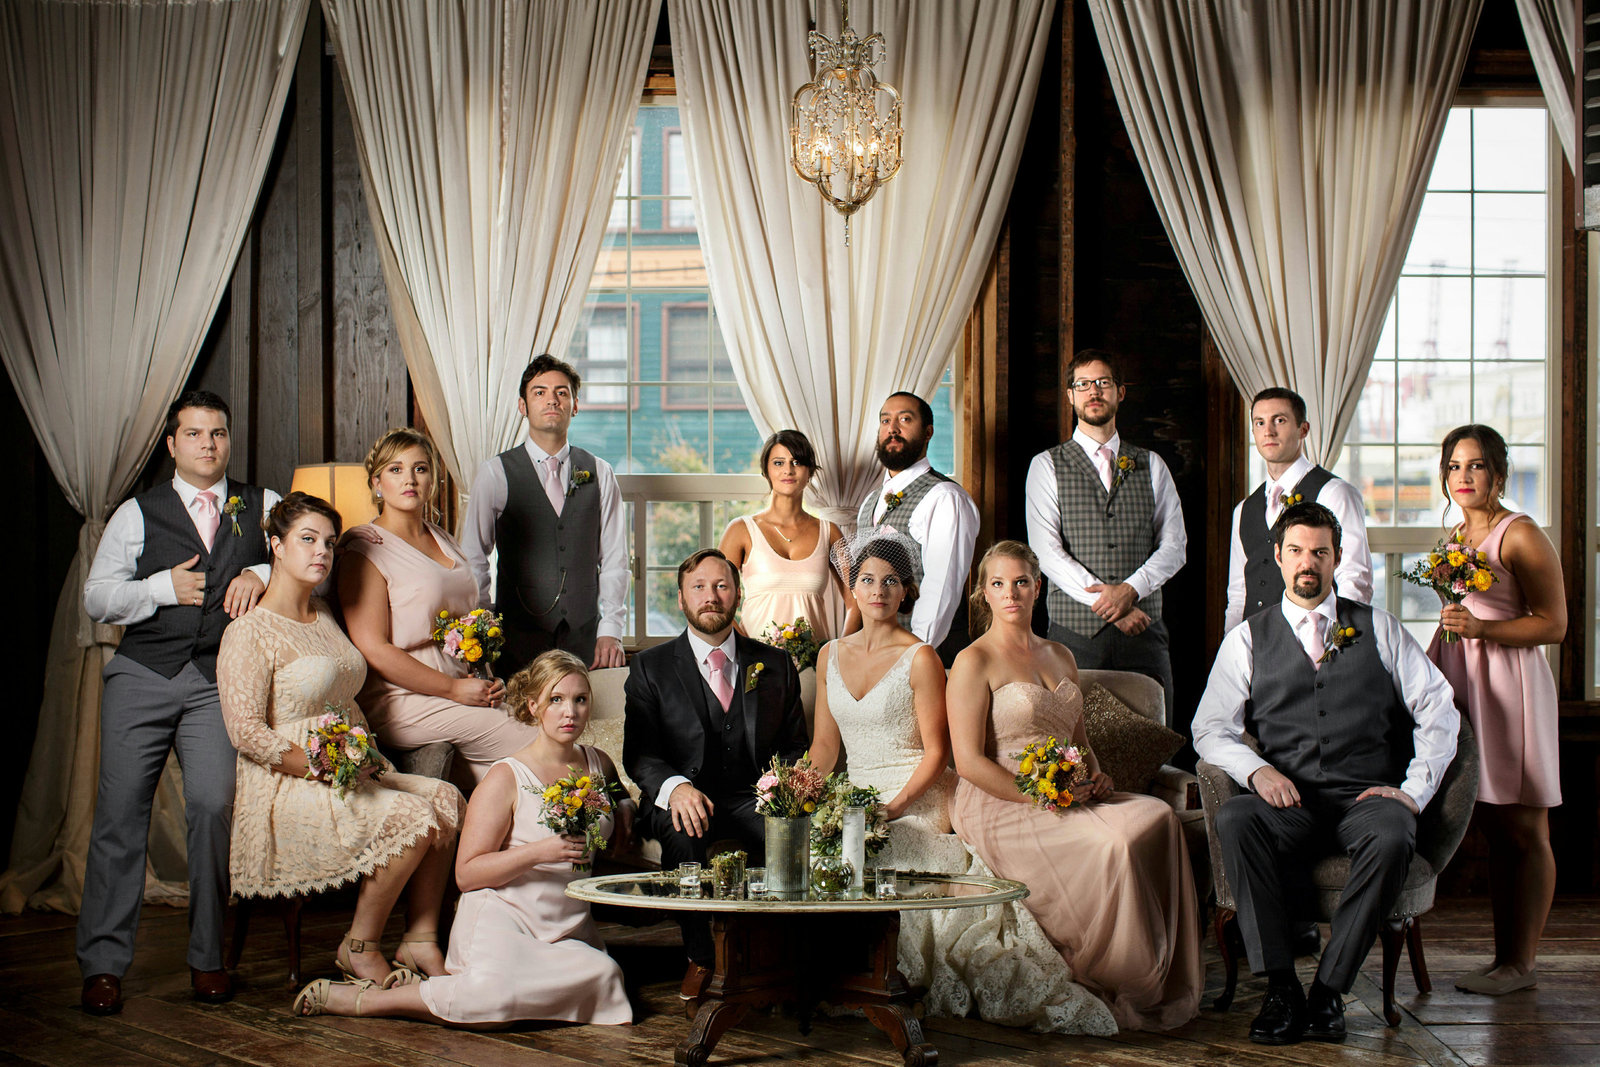 vouge-bridal-party-vanity-fair-wedding-portrait